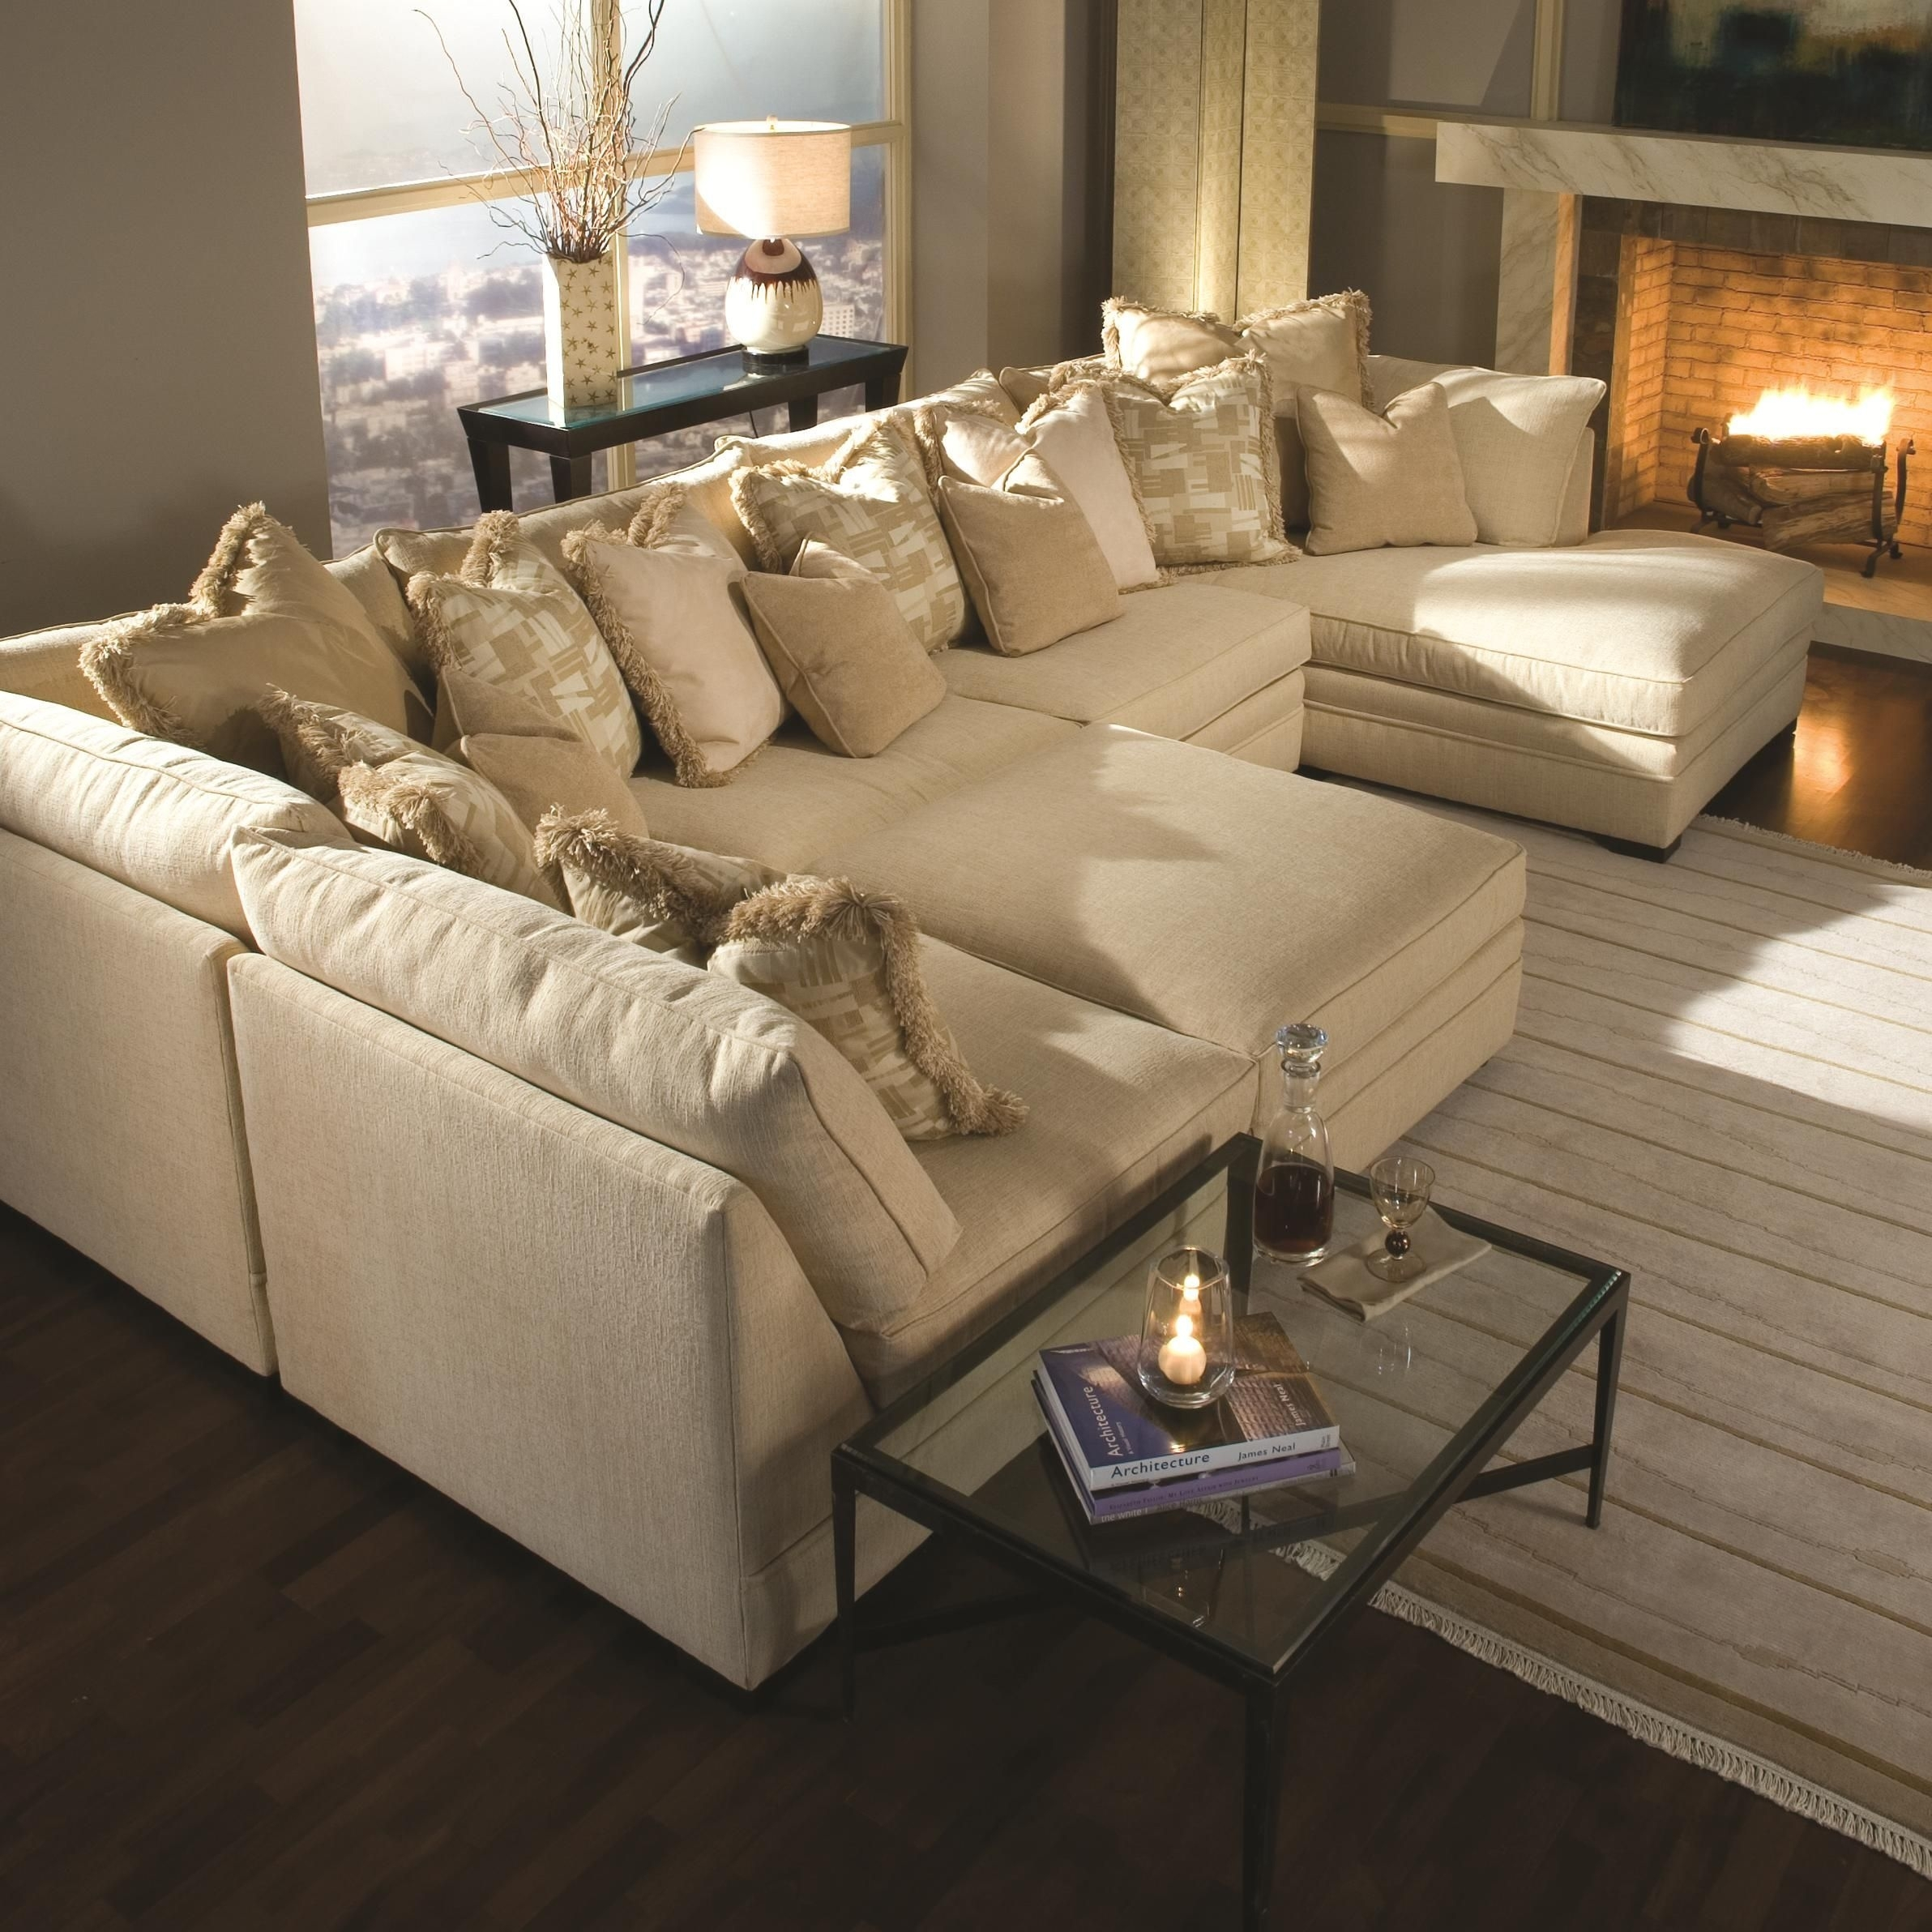 7100 Contemporary U-Shape Sectional Sofa With Chaisehuntington for Orlando Sectional Sofas (Image 1 of 10)